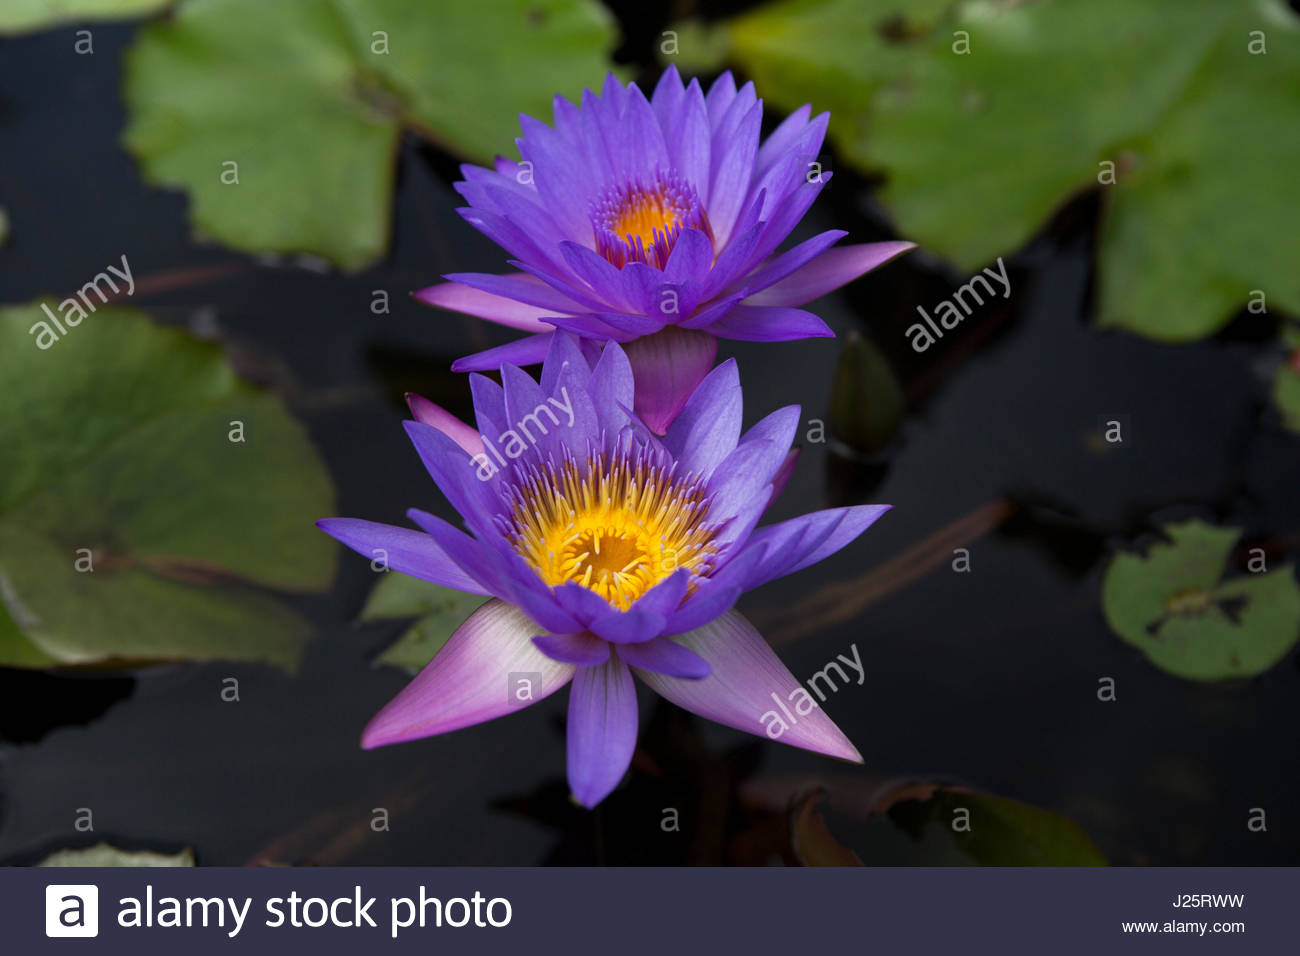 Two purple lotus flowers in a pond stock photo 139040773 alamy two purple lotus flowers in a pond izmirmasajfo